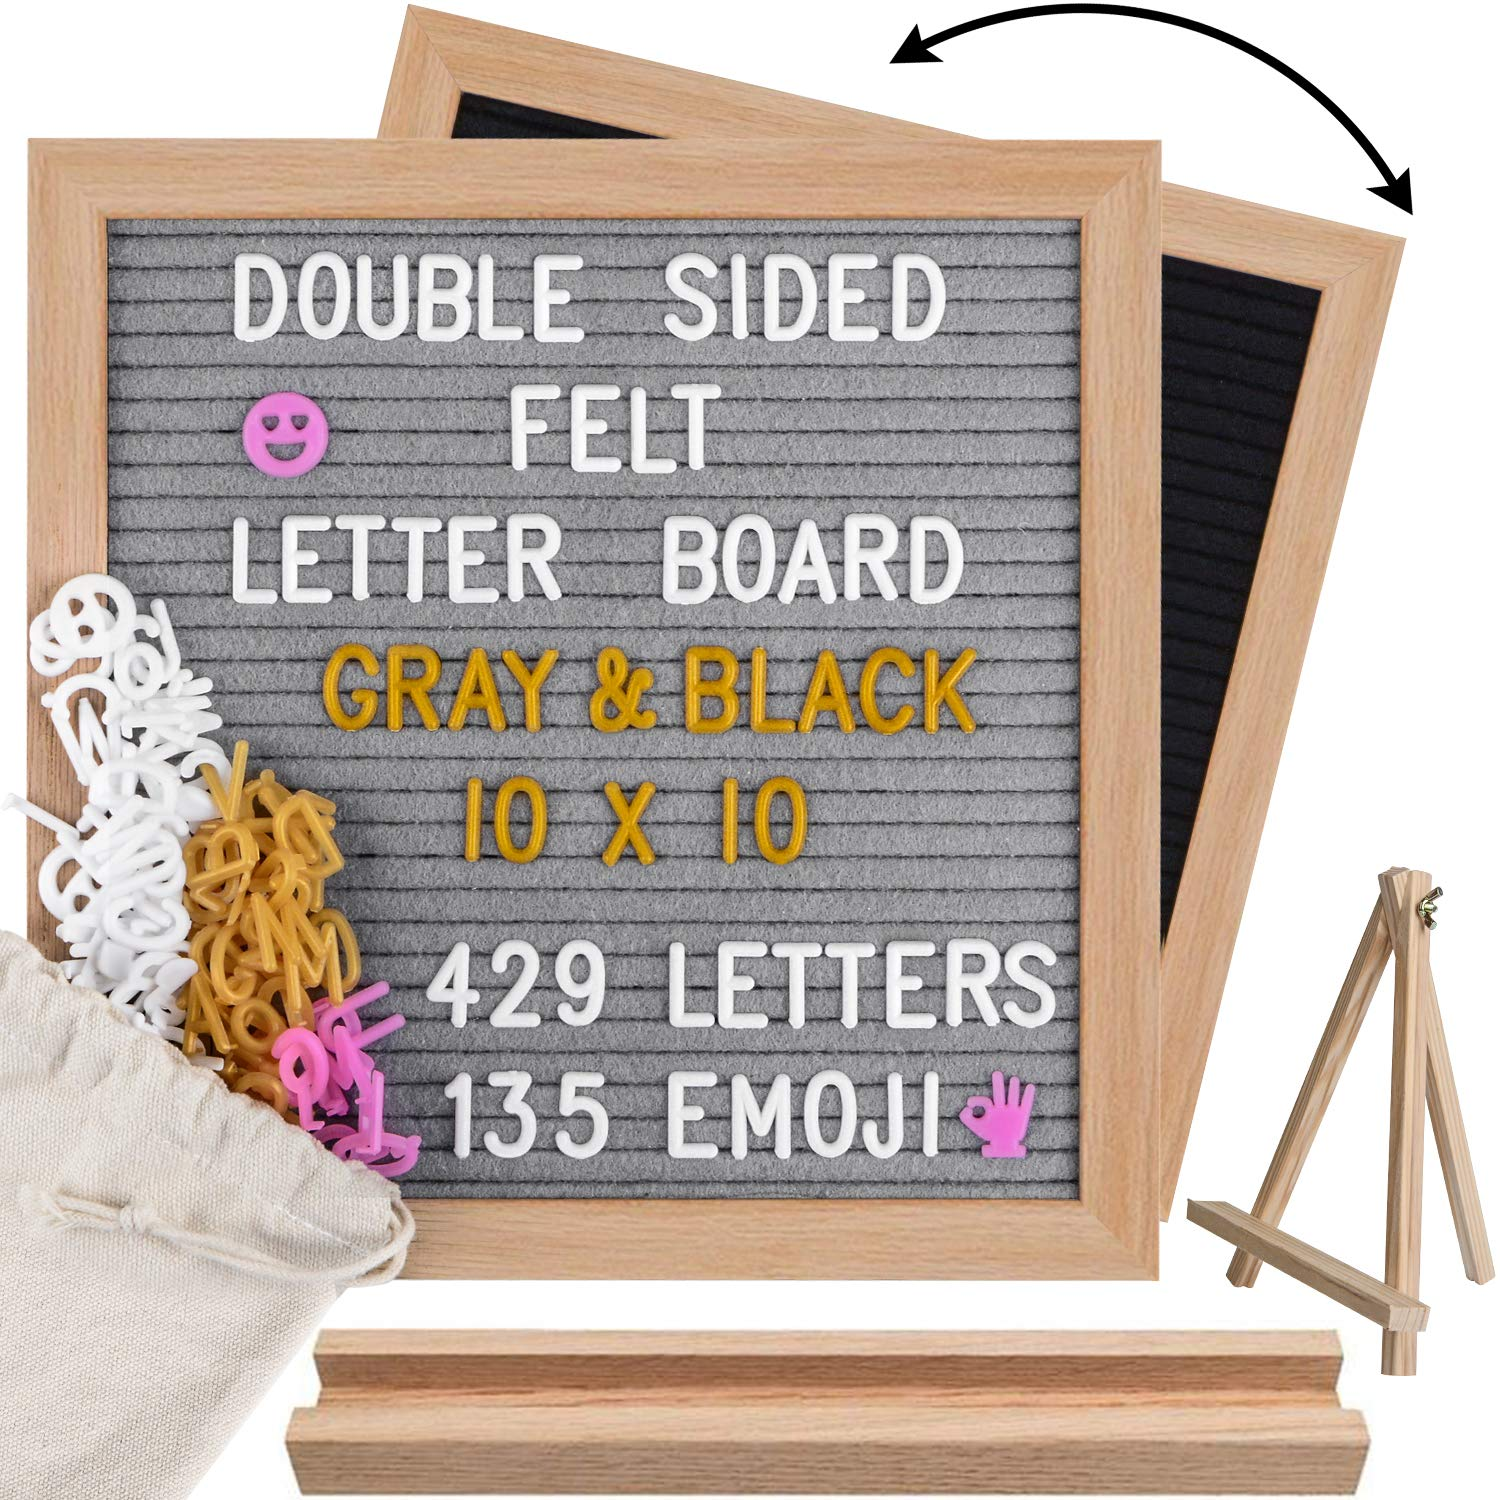 Double Sided Felt Letter Board 10x10, Gray/Black Changeable Sign Message Board, 564 Precut Letters(3 Colors), Wood Frame Word Board with 2 Stands by Board2by